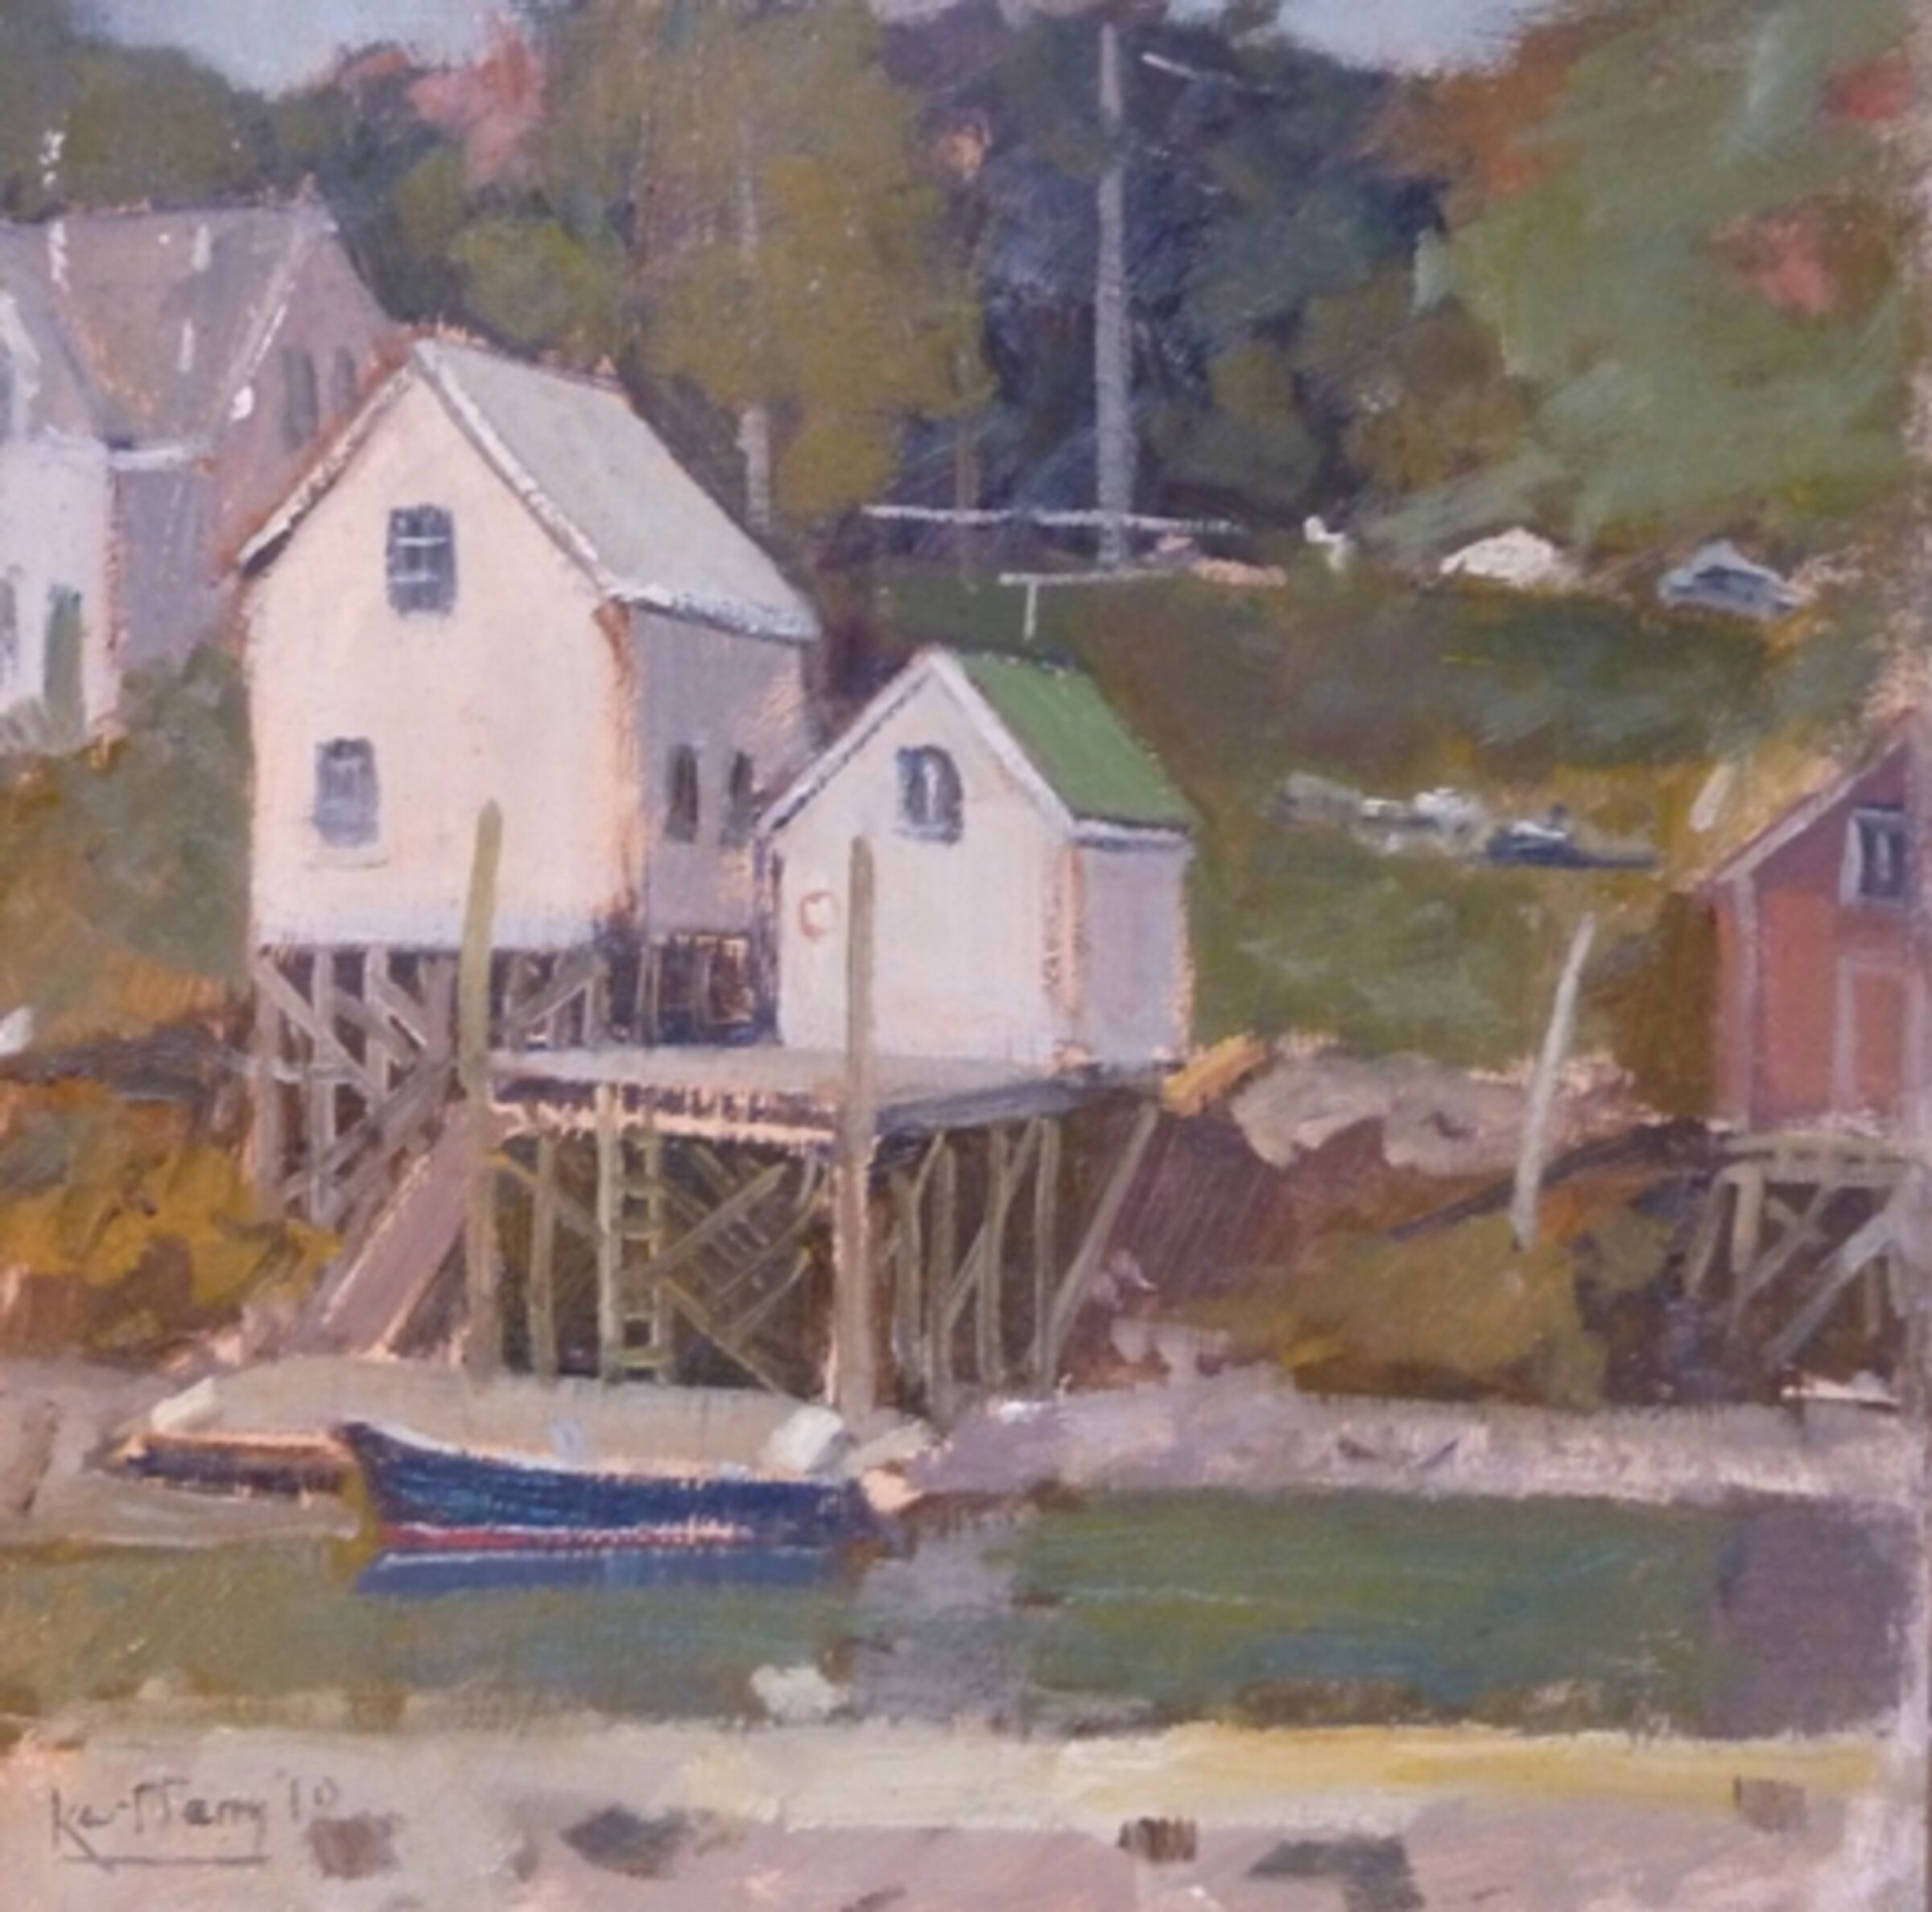 Lobster shacks, Cosy Harbour, Boothbay, Maine